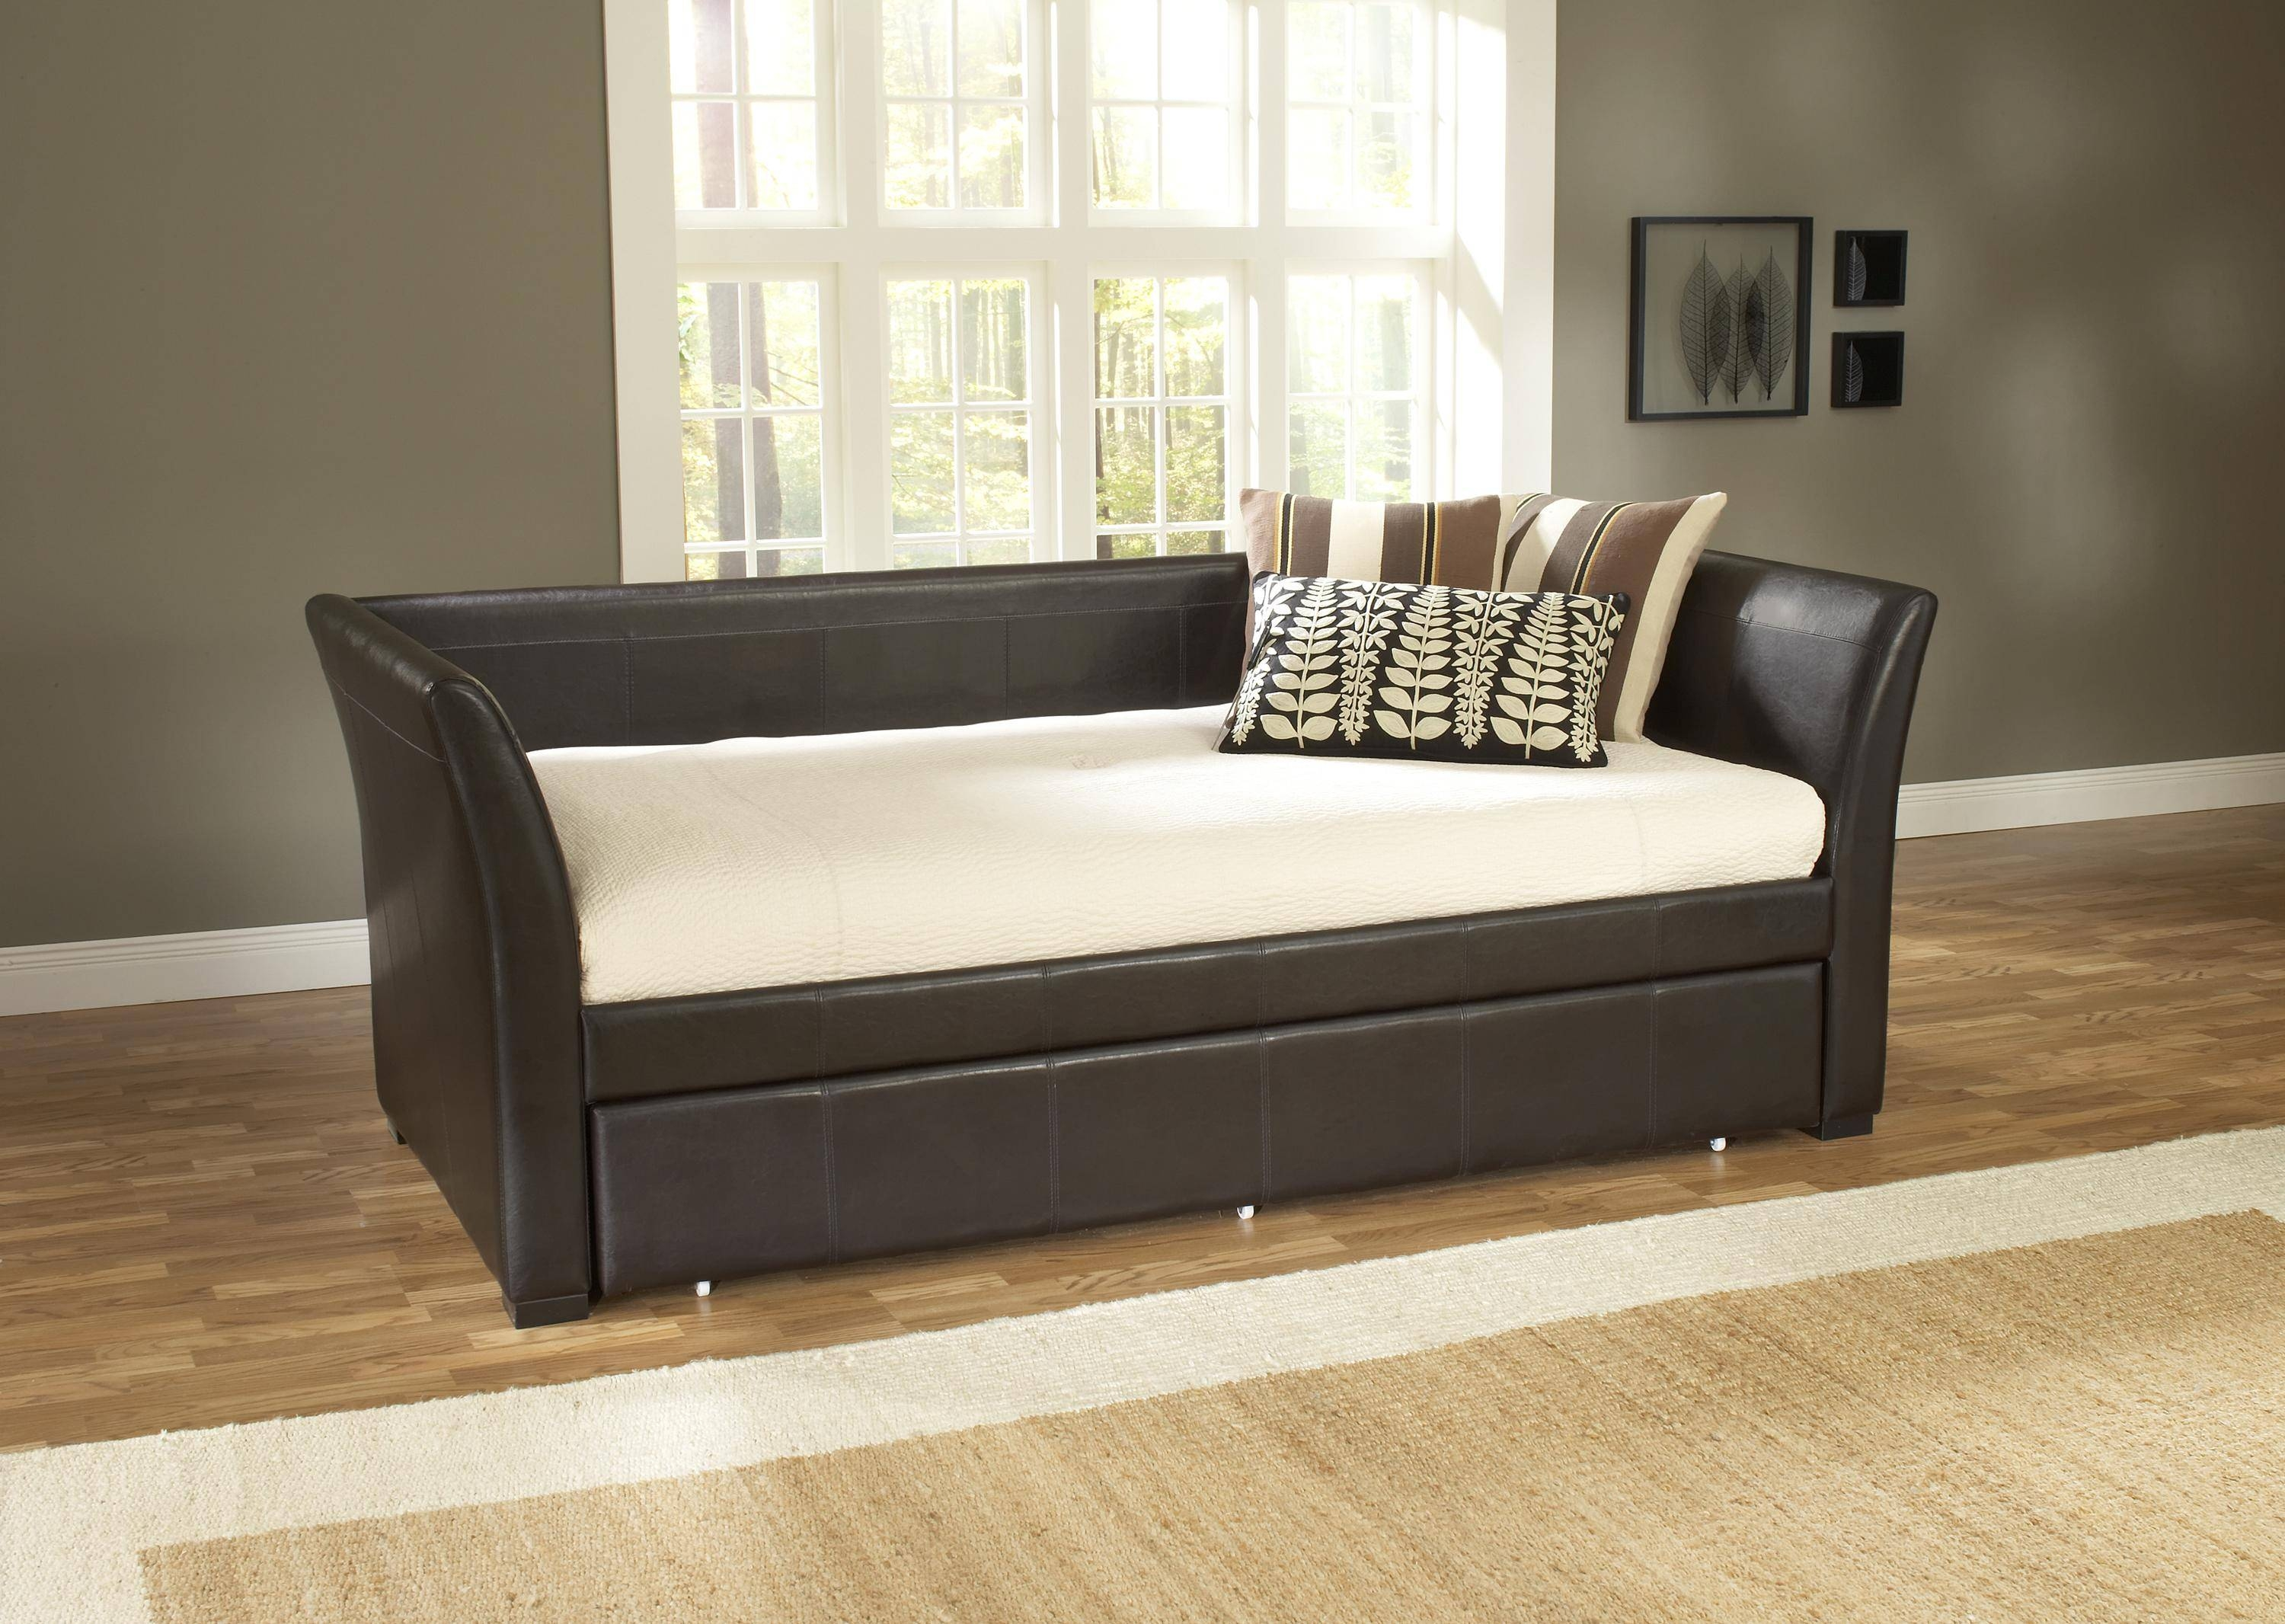 Sofa Daybed With Trundle | Best Sofas Ideas – Sofascouch With Sofas Daybed With Trundle (View 10 of 15)